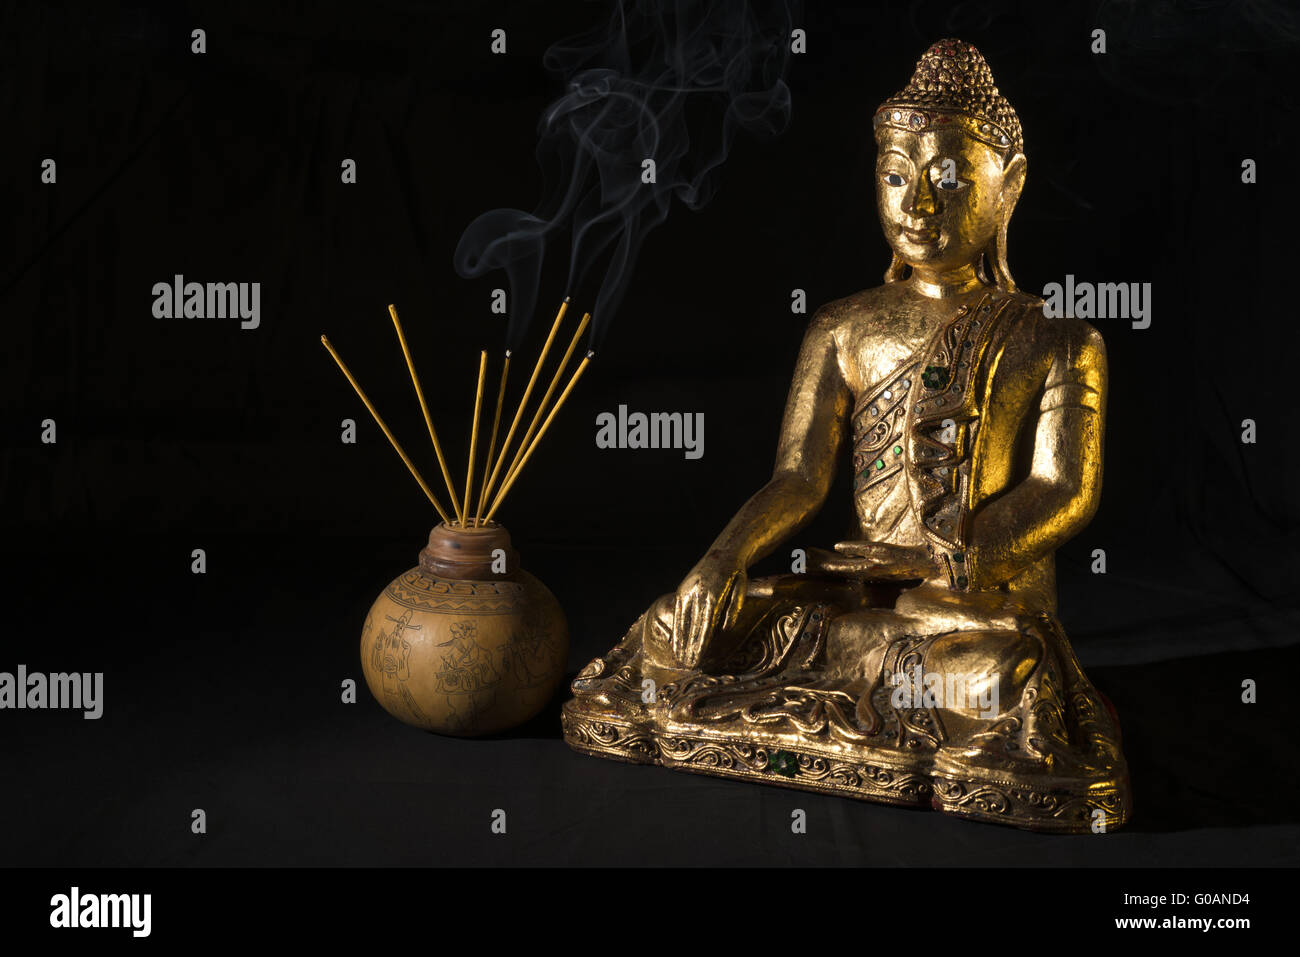 Buddah with incense sticks Stock Photo